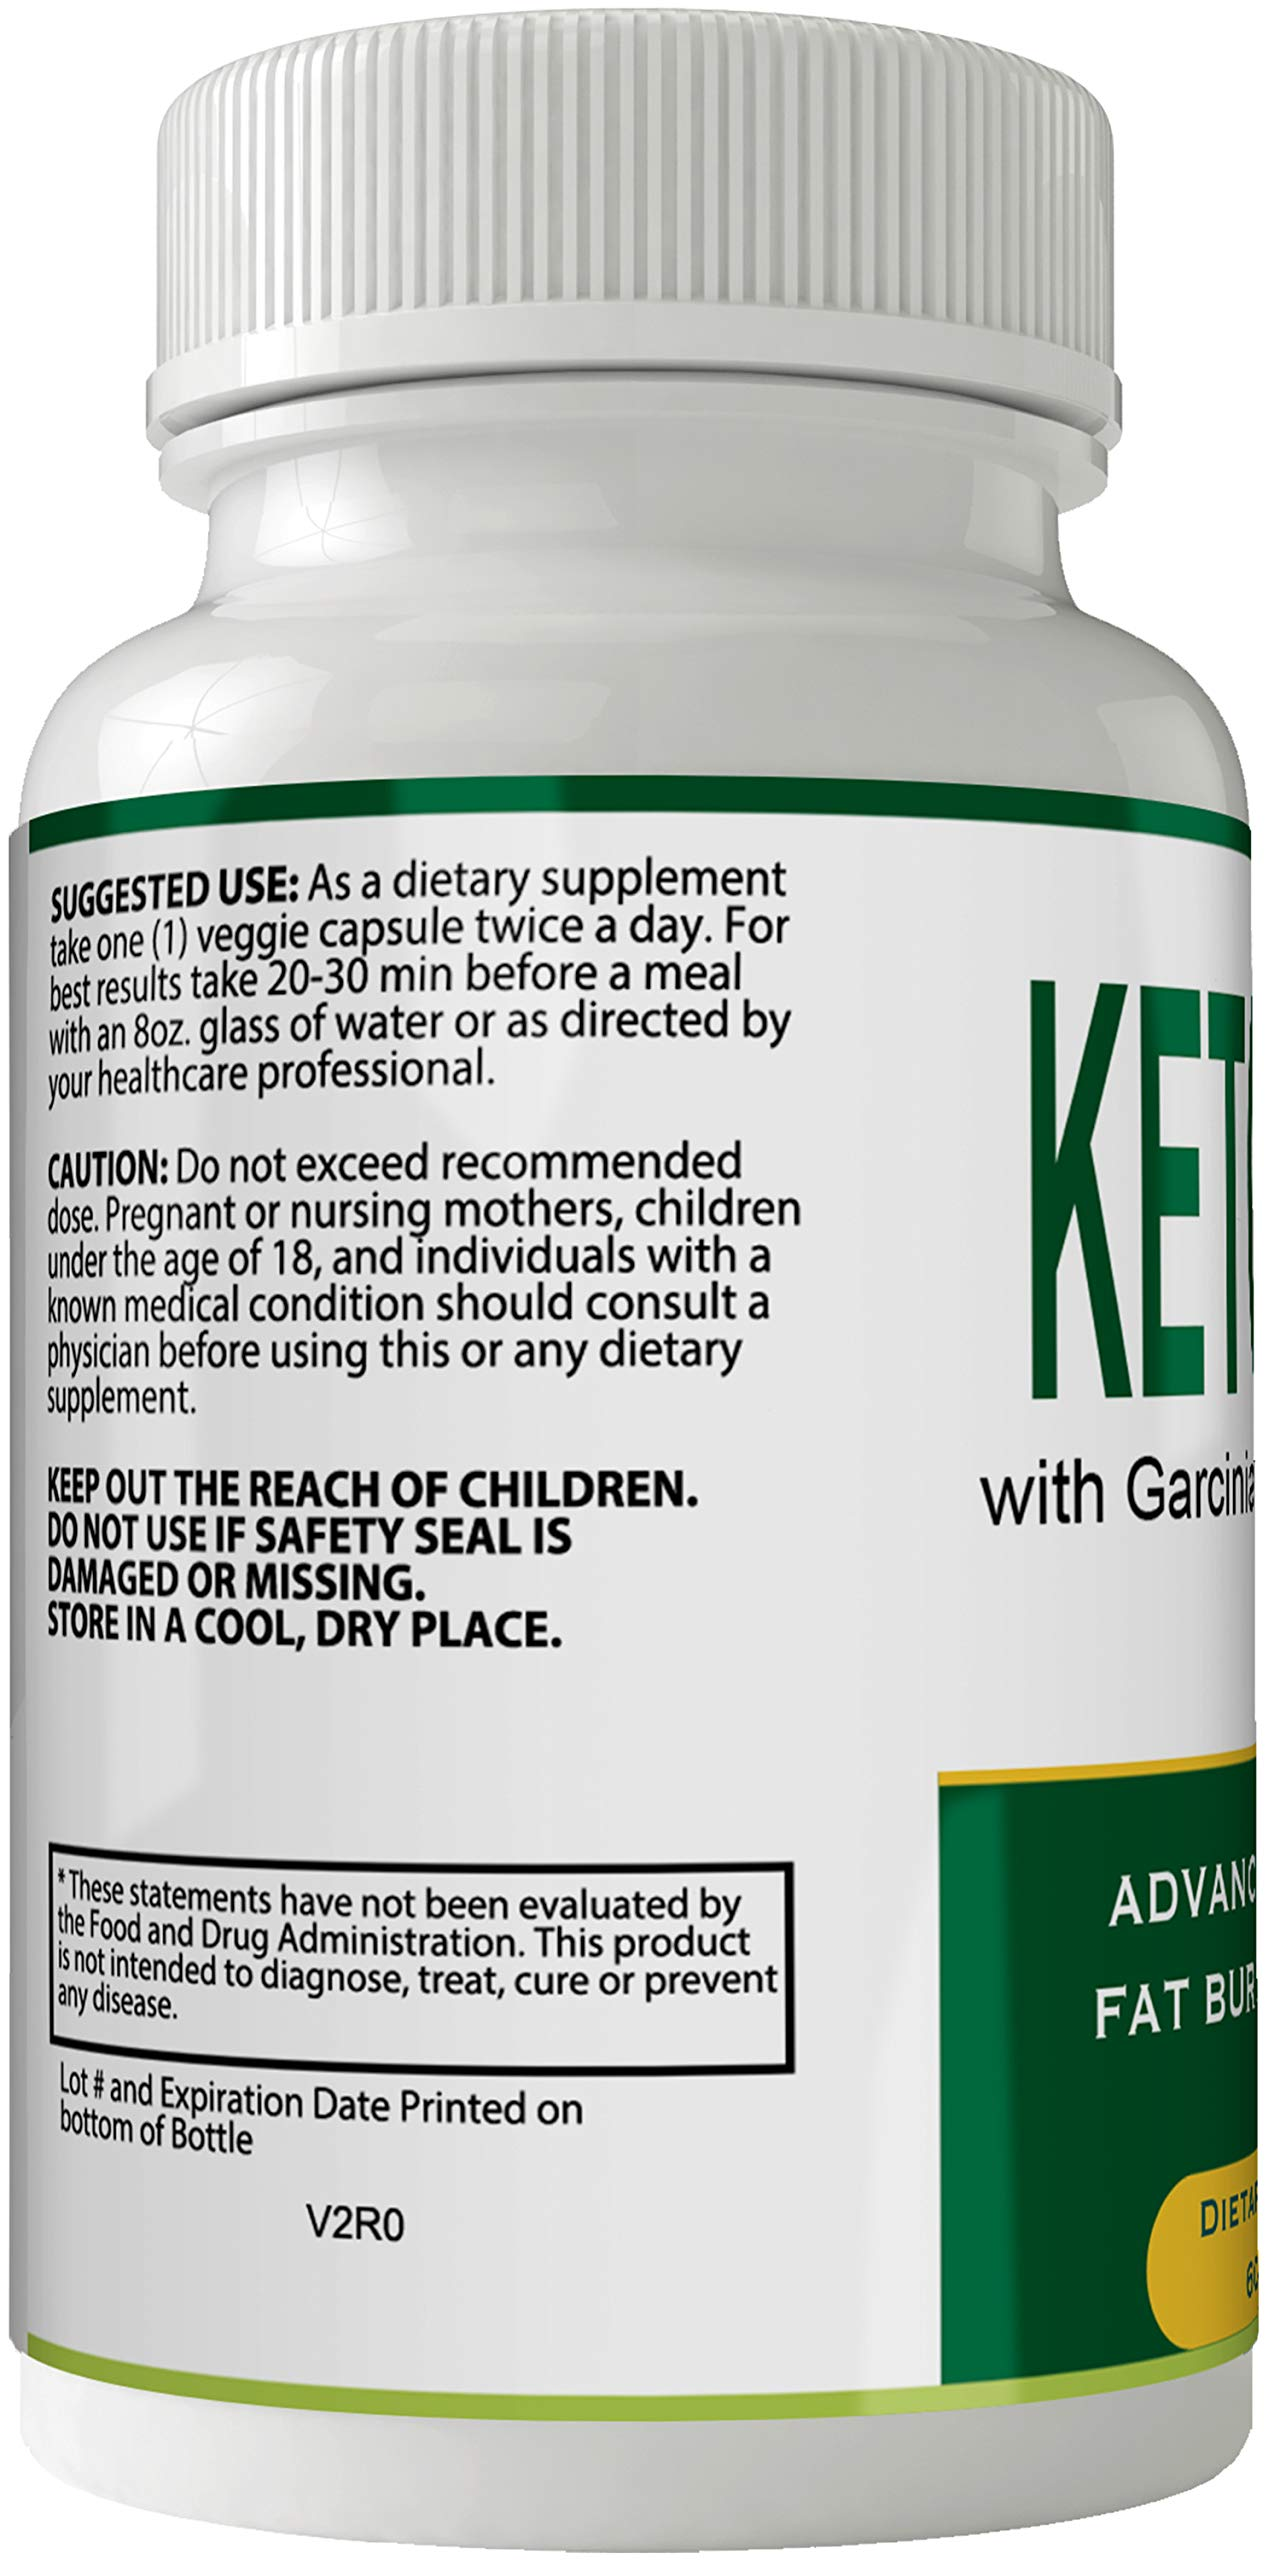 Keto Flex Weight Loss Pills Diet Capsules with Garcinia Cambogia, Weightloss Lean Fat Burner, Advanced Thermal Fat Loss Supplement for Women and Men by nutra4health LLC (Image #3)